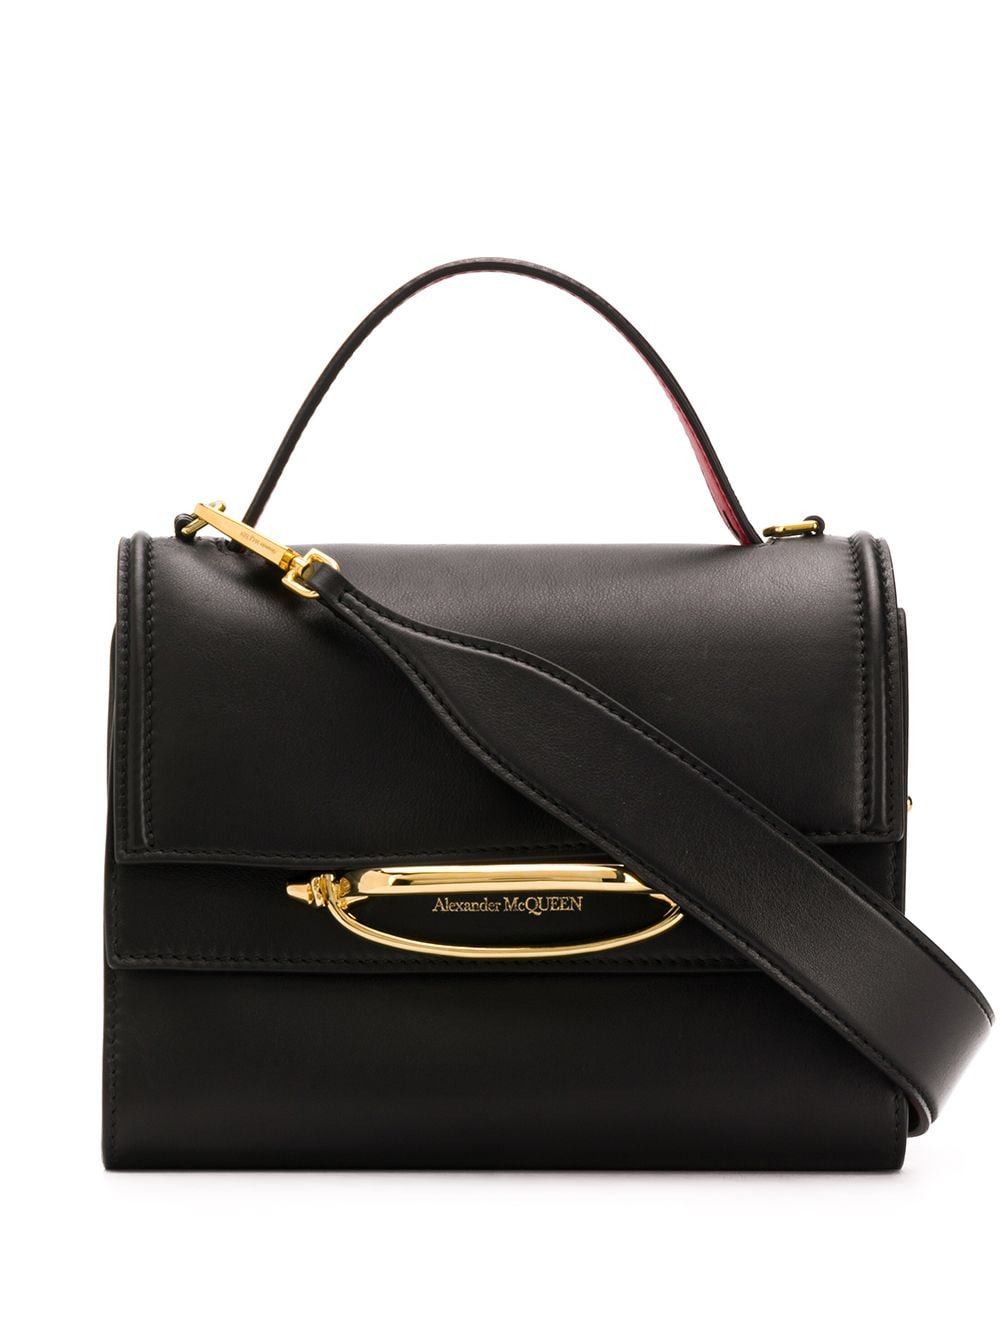 Small Double Flap Leather Bag